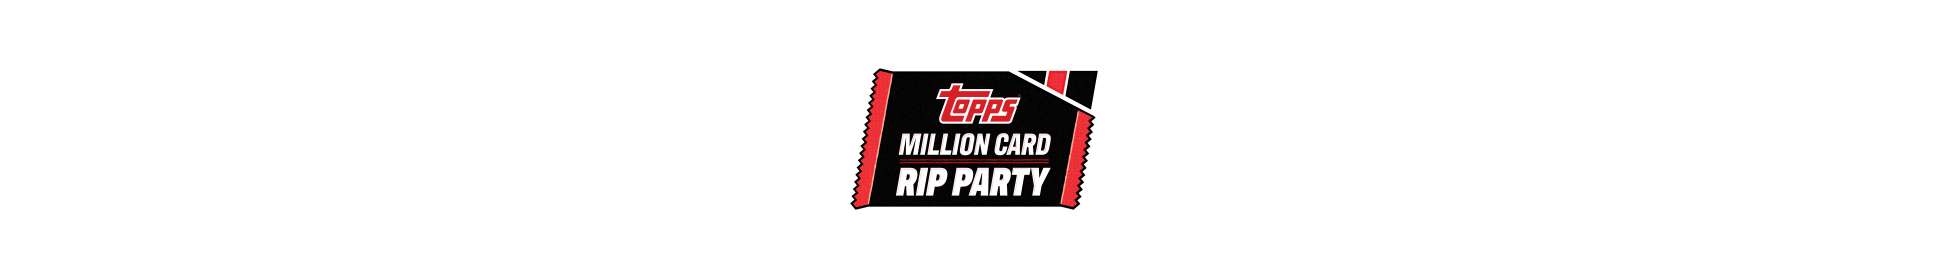 Topps hosting Million Card Rip Party